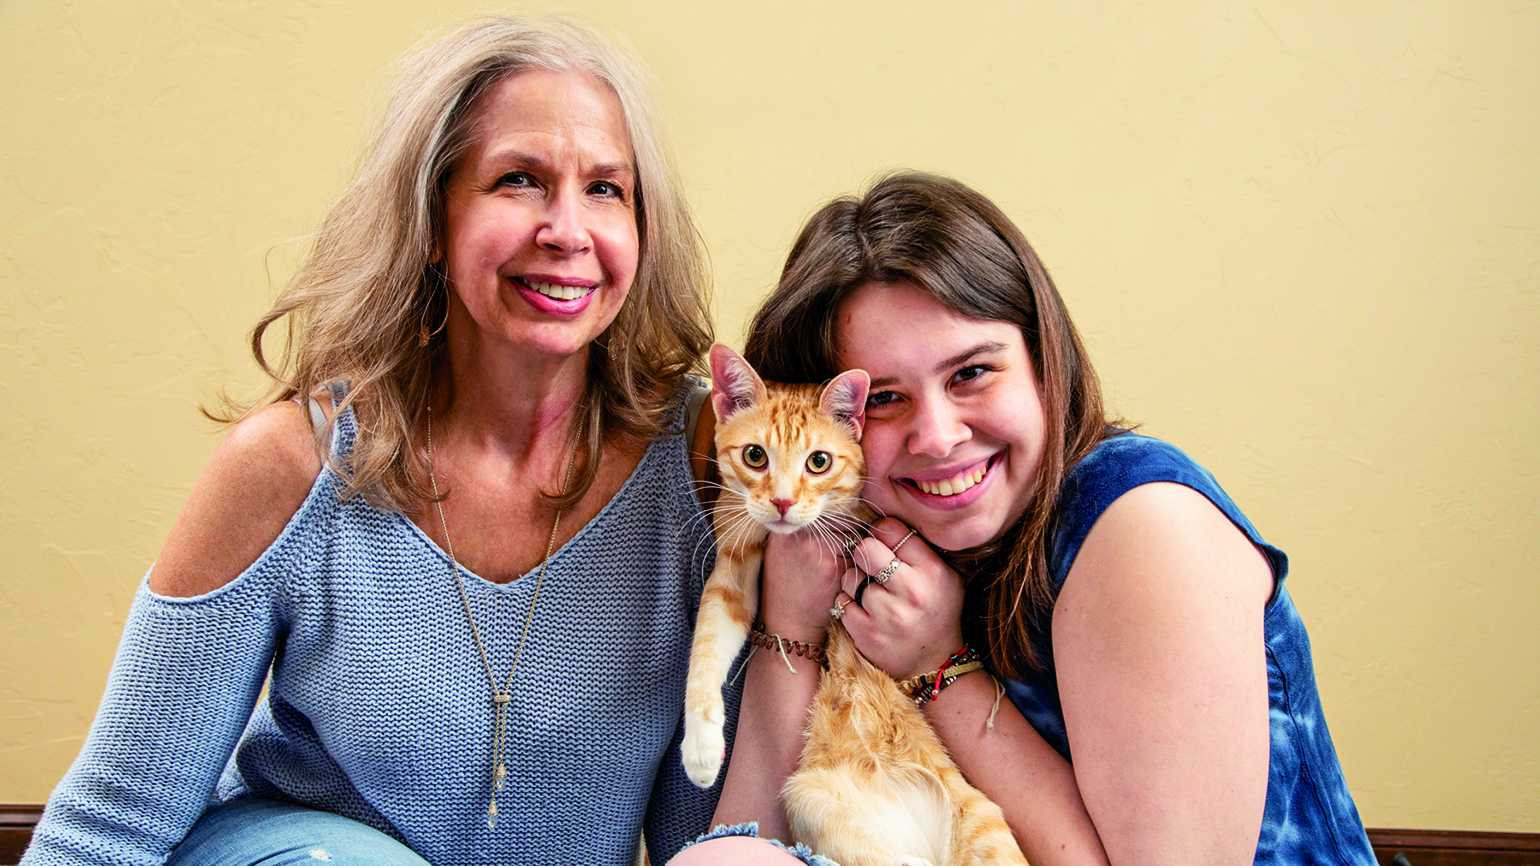 Micah Thompson and her cat, Ron, and mother Stephanie